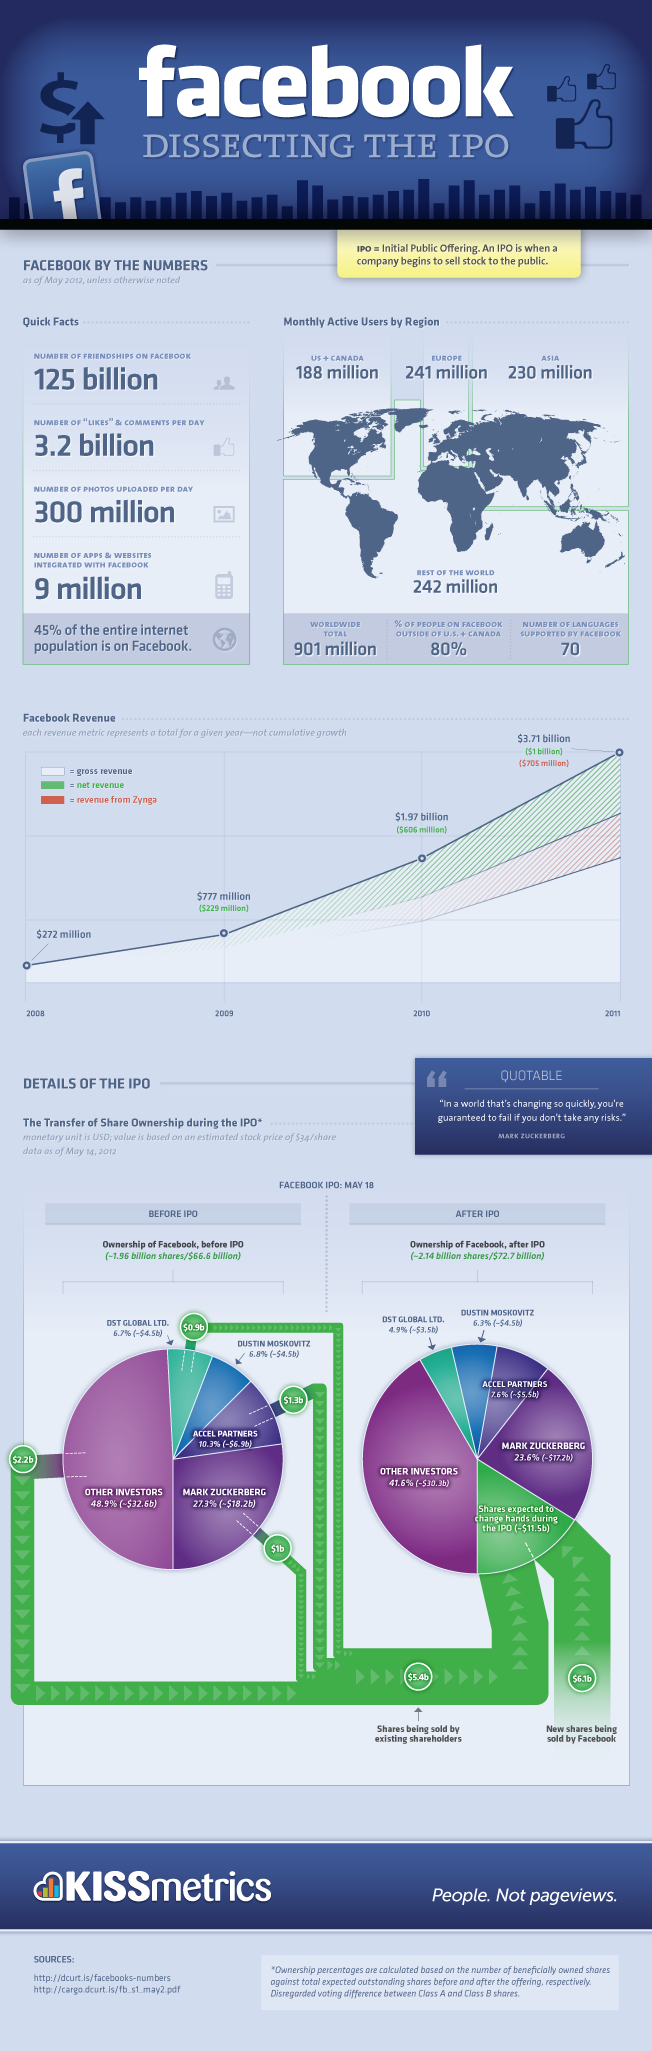 Facebook-after-IPO-infographic